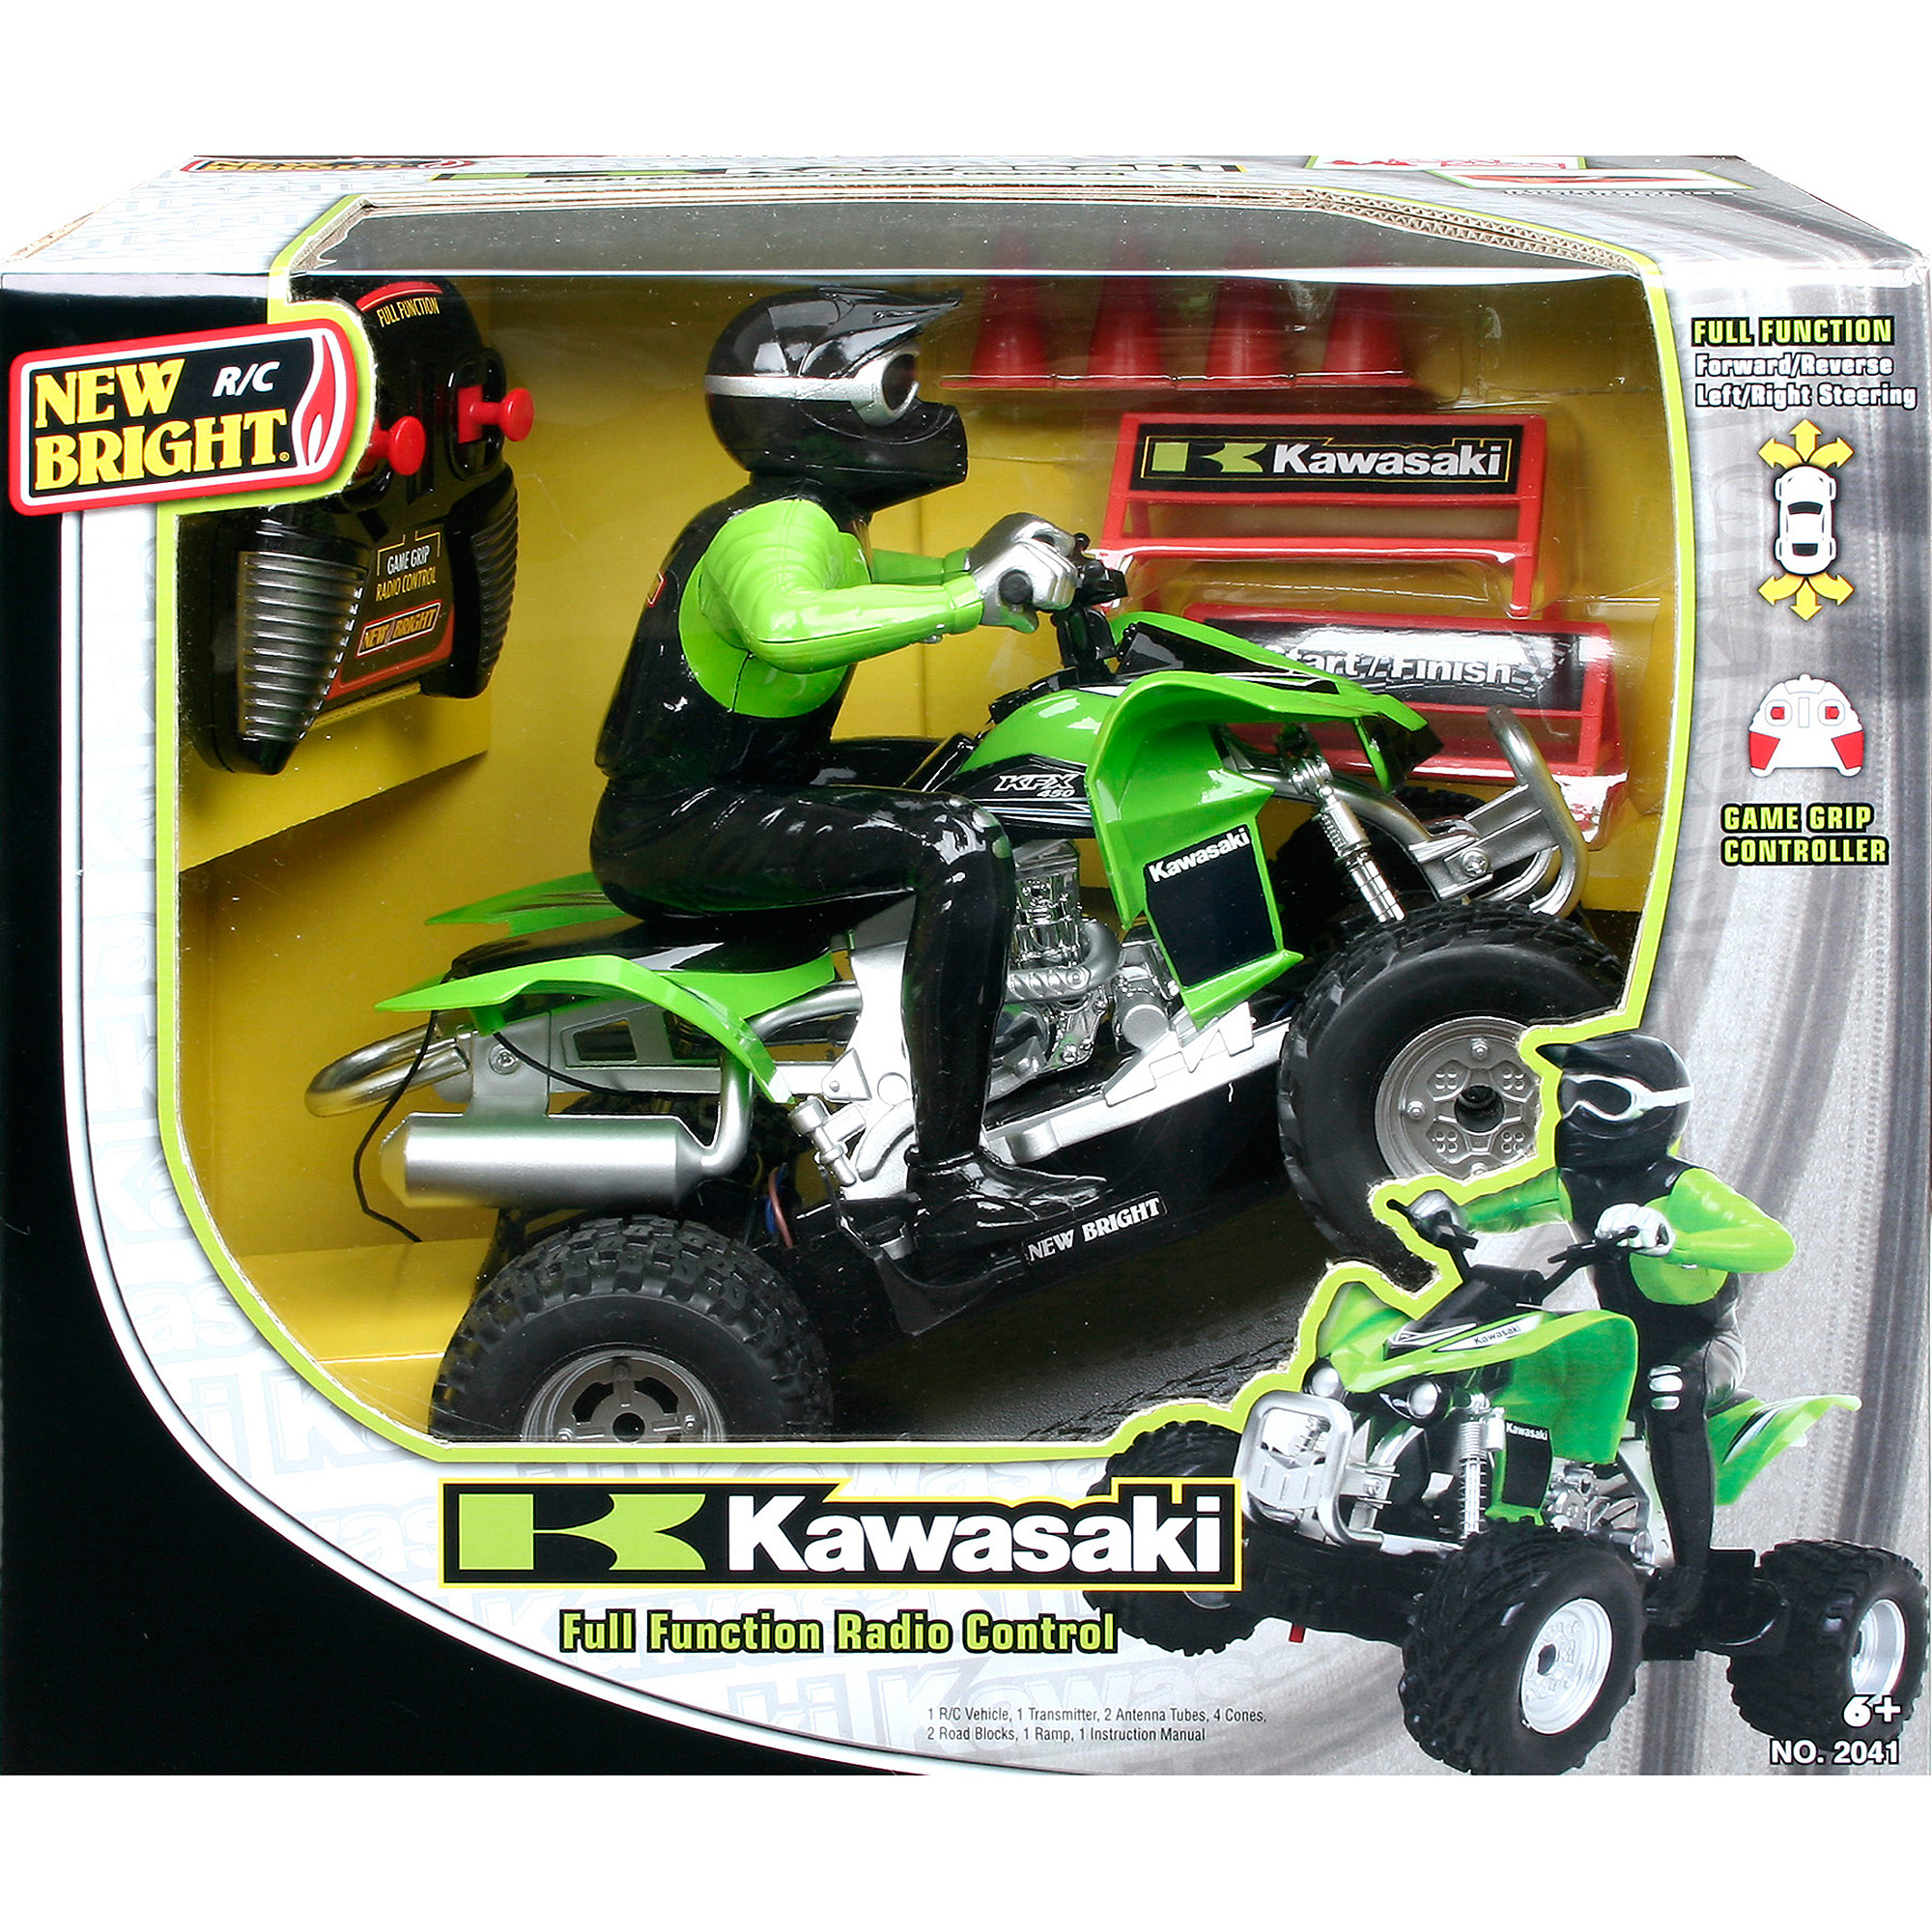 New Bright 1:20 R/C Kawasaki KFX 450 with Rider, Green